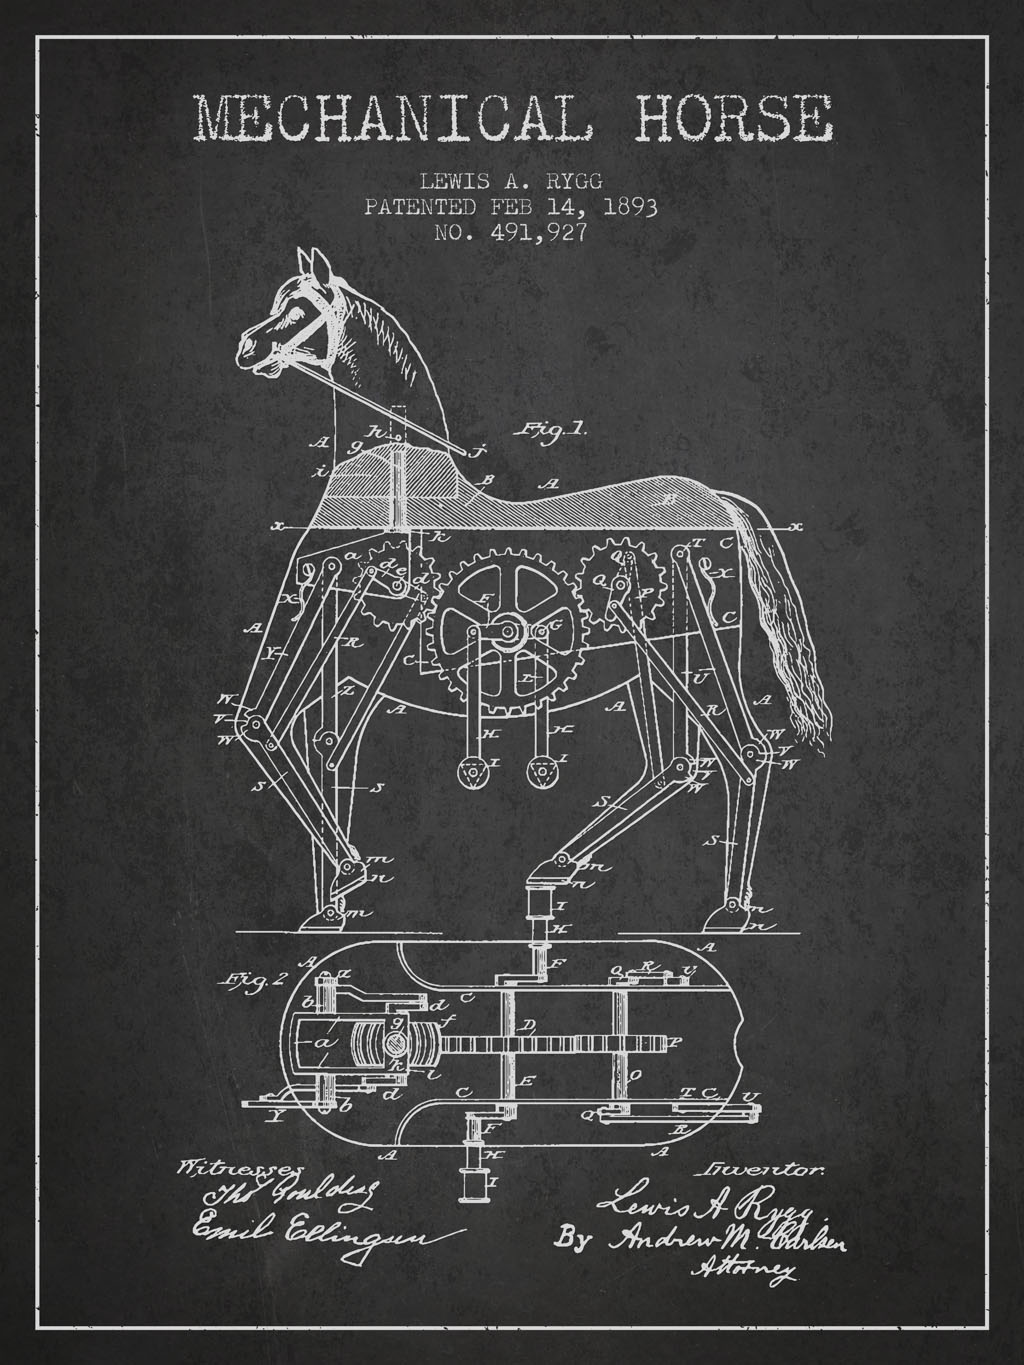 A vintage Mechanical Horse Patent Drawing From 1893 on Dark grunge background.